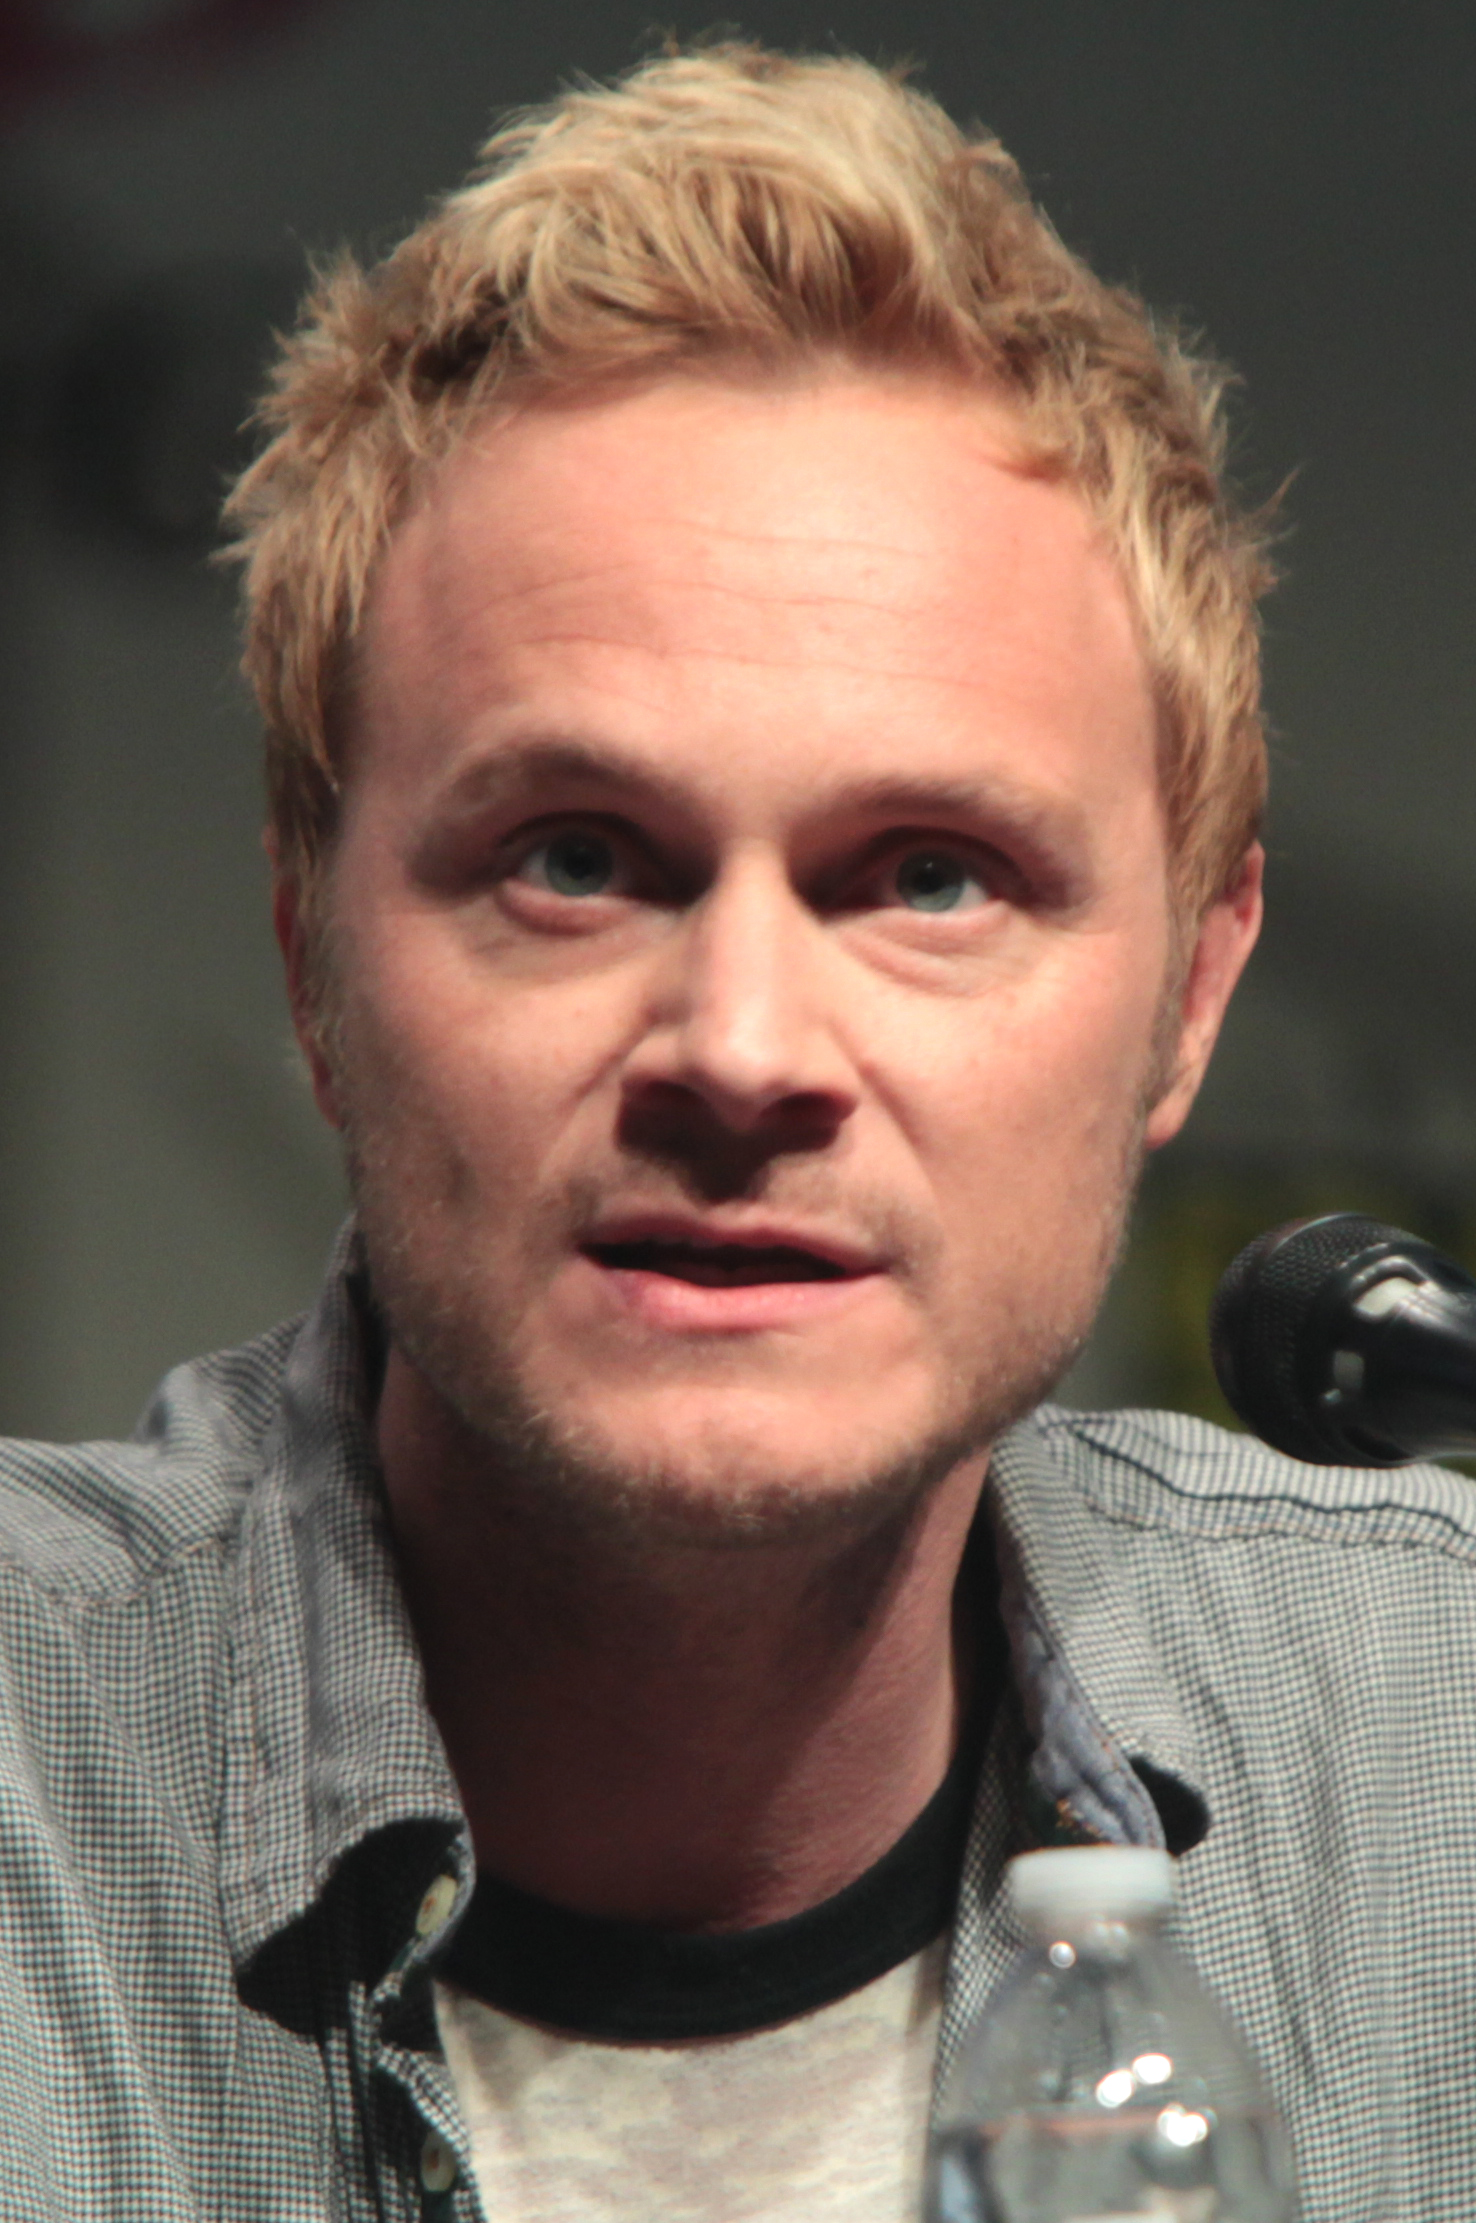 david andersdavid anders once upon a time, david anders arrow, david anders imdb, david anders gif hunt, david anders height, david anders eliza taylor, david anders interview, david anders criminal minds, david anders instagram, david anders twitter, david anders singing, david anders wiki, david anders vampire diaries, david anders fan site, david anders, david anders married, david anders heroes, david anders izombie, david anders wife, david anders catholic